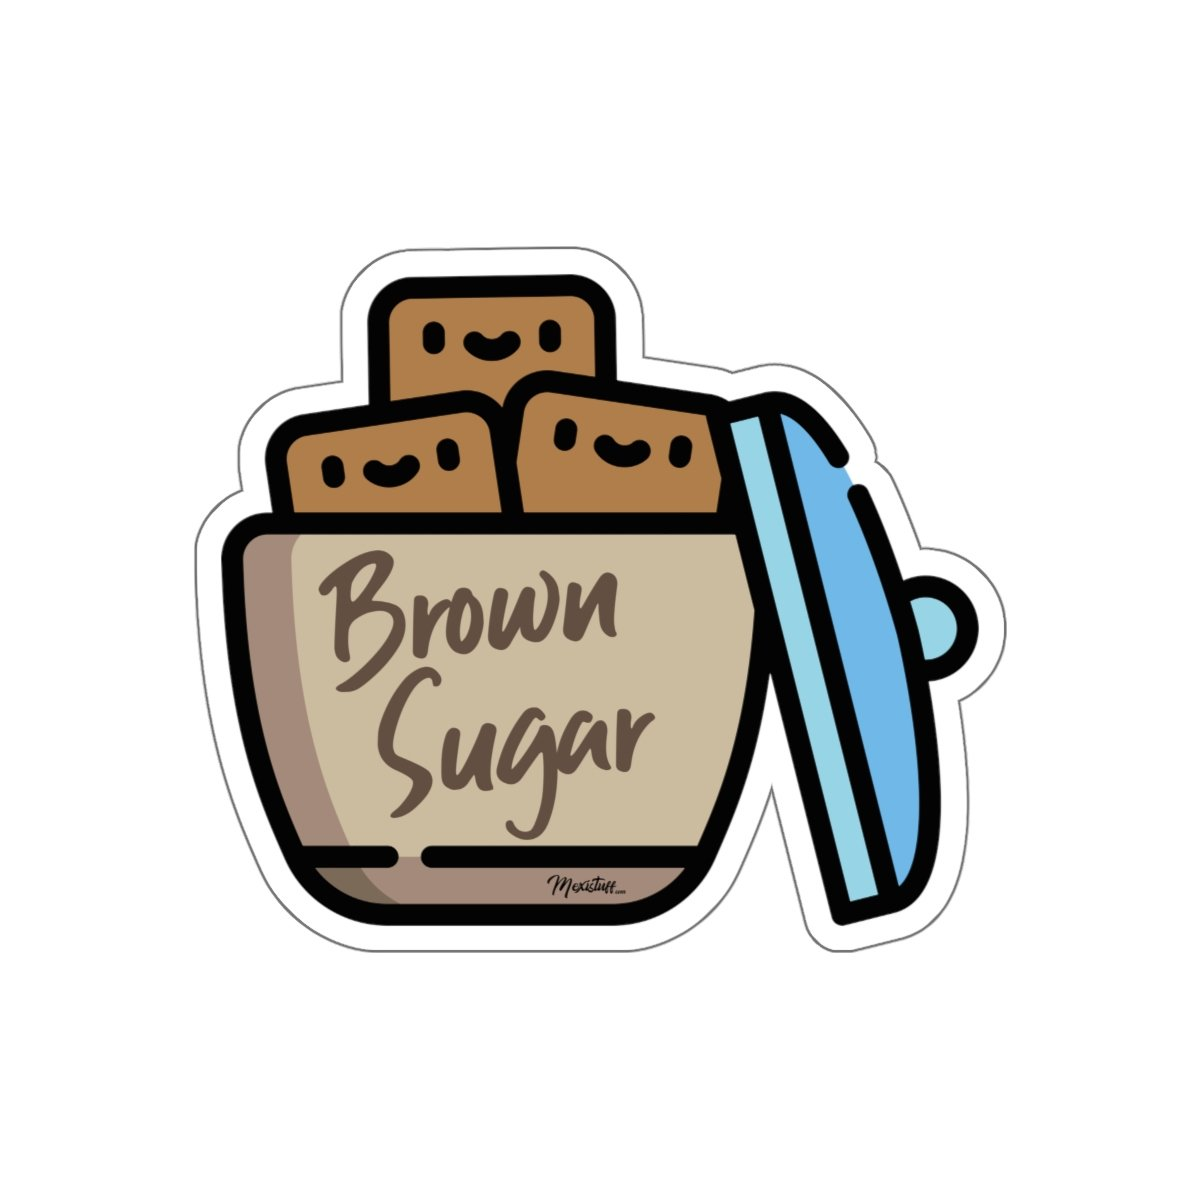 Brown Sugar Sticker.